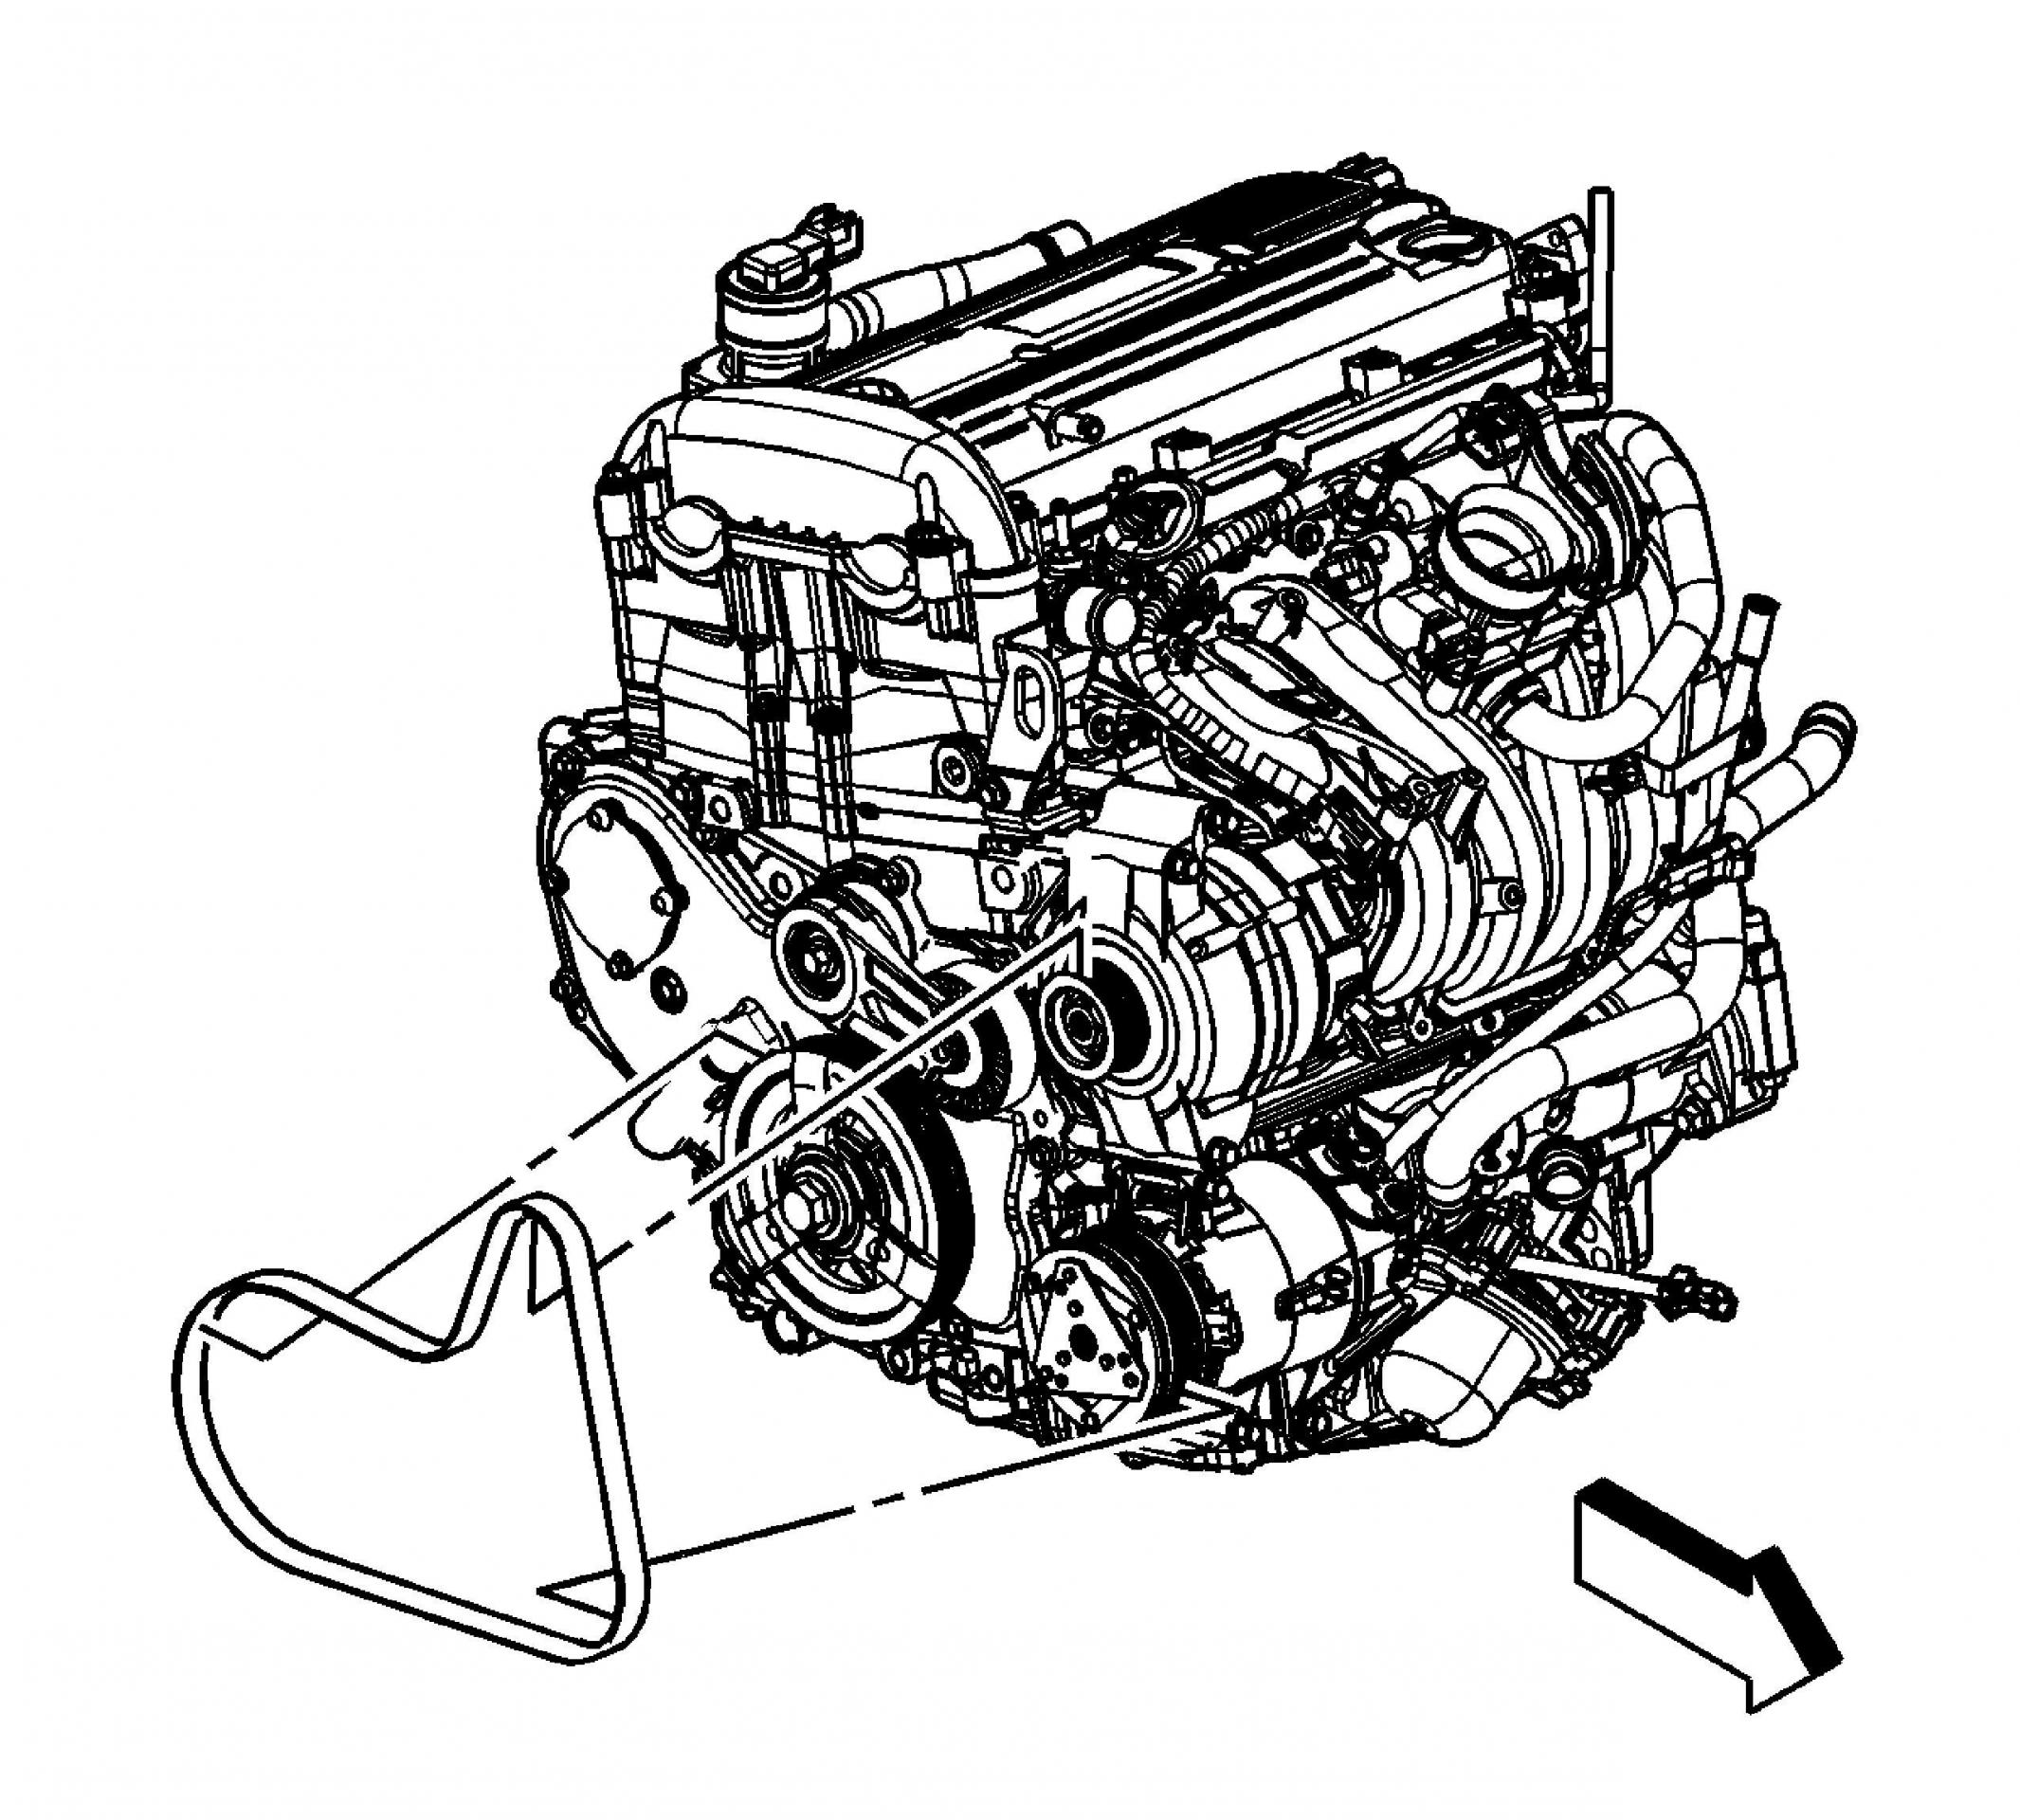 Wrg Chevy Equinox Engine Diagram